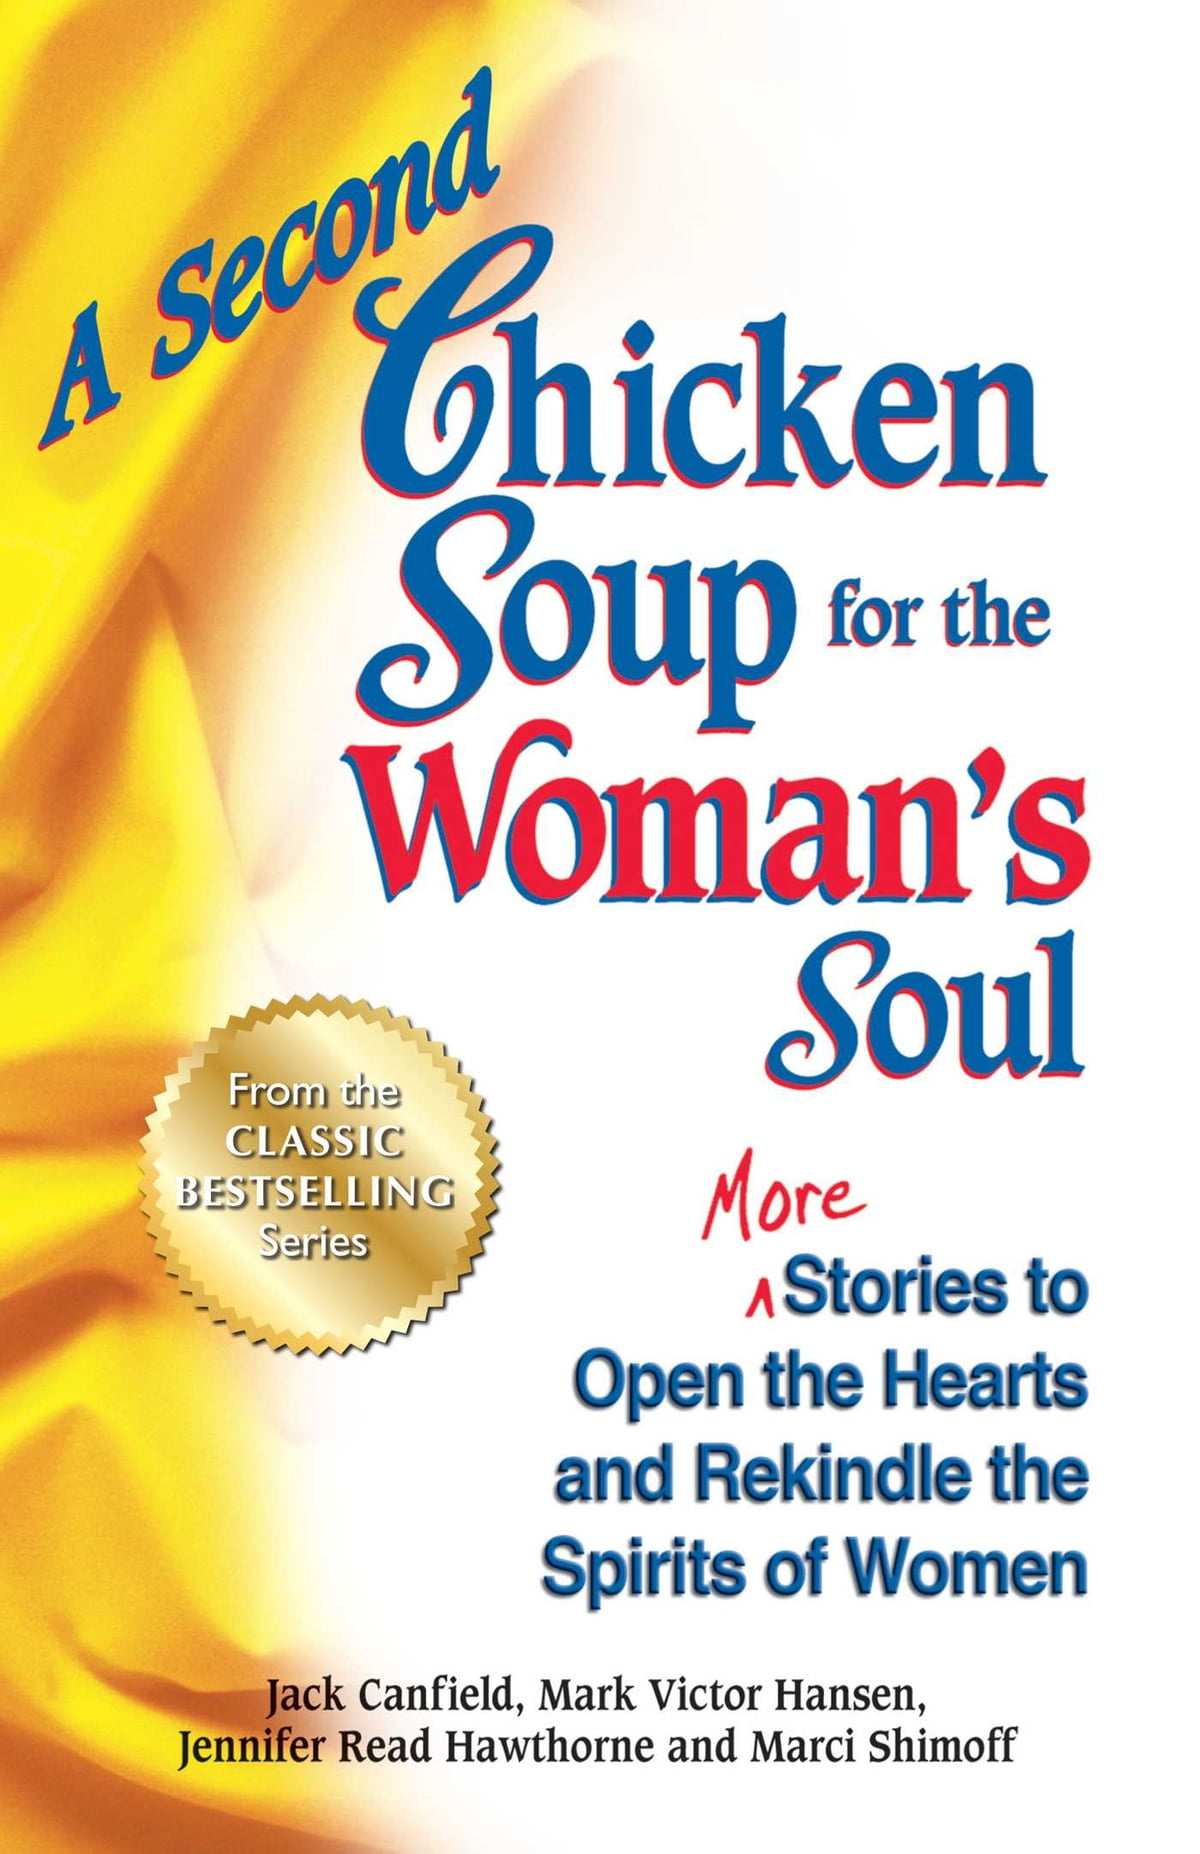 A Second Chicken Soup For The Womans Soul Ebook By Jack Canfield